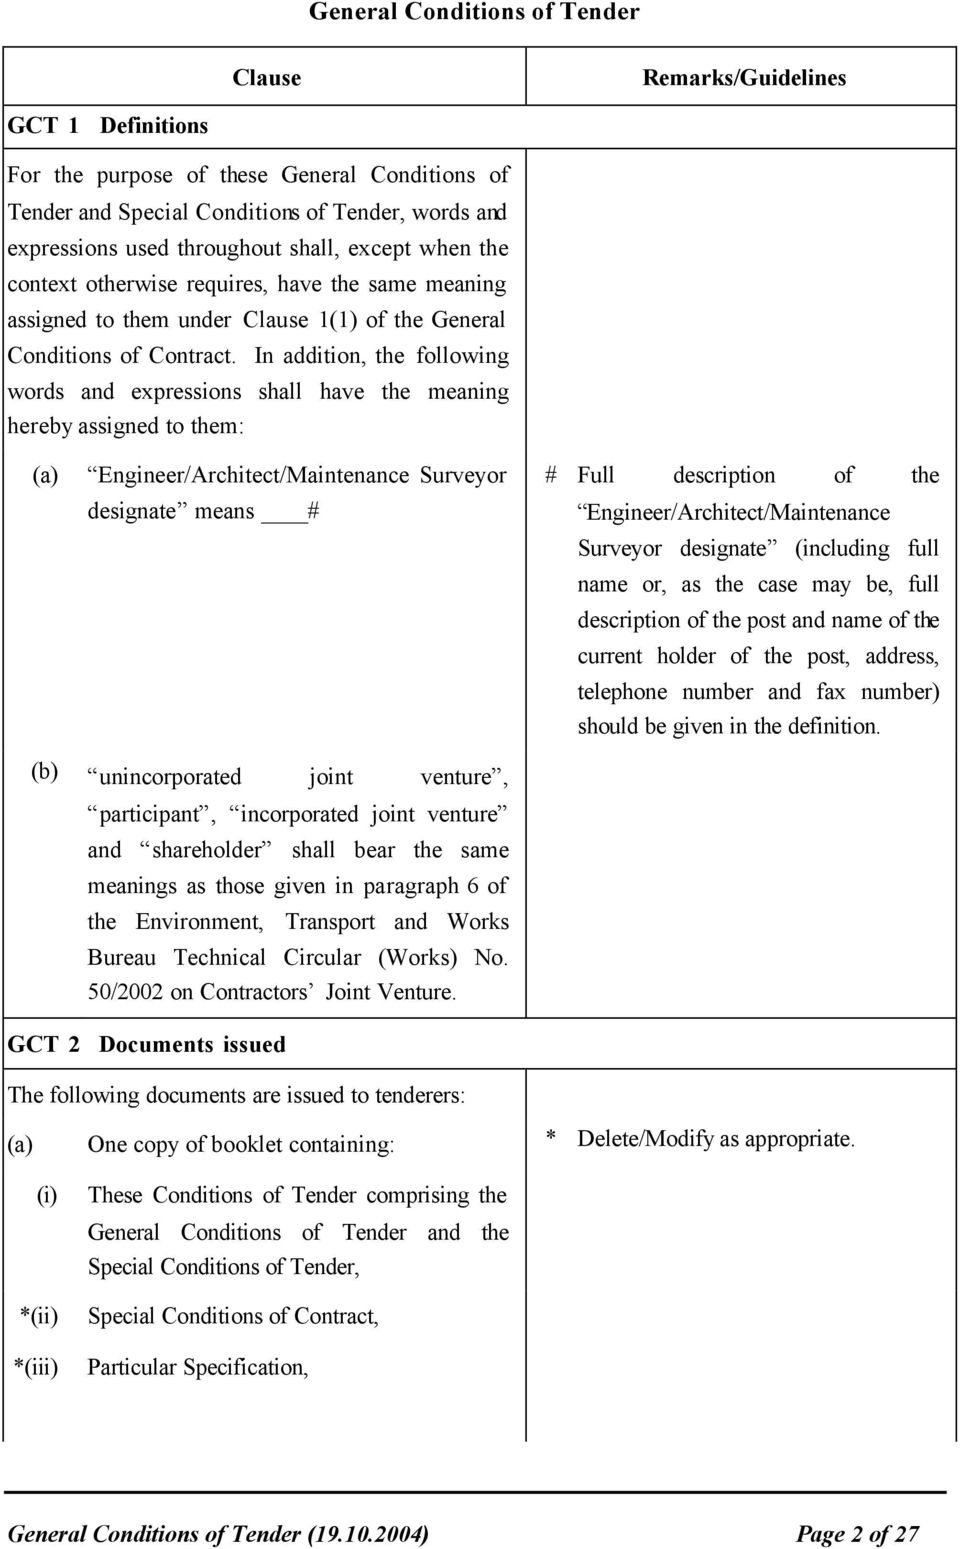 General Conditions of Tender - PDF